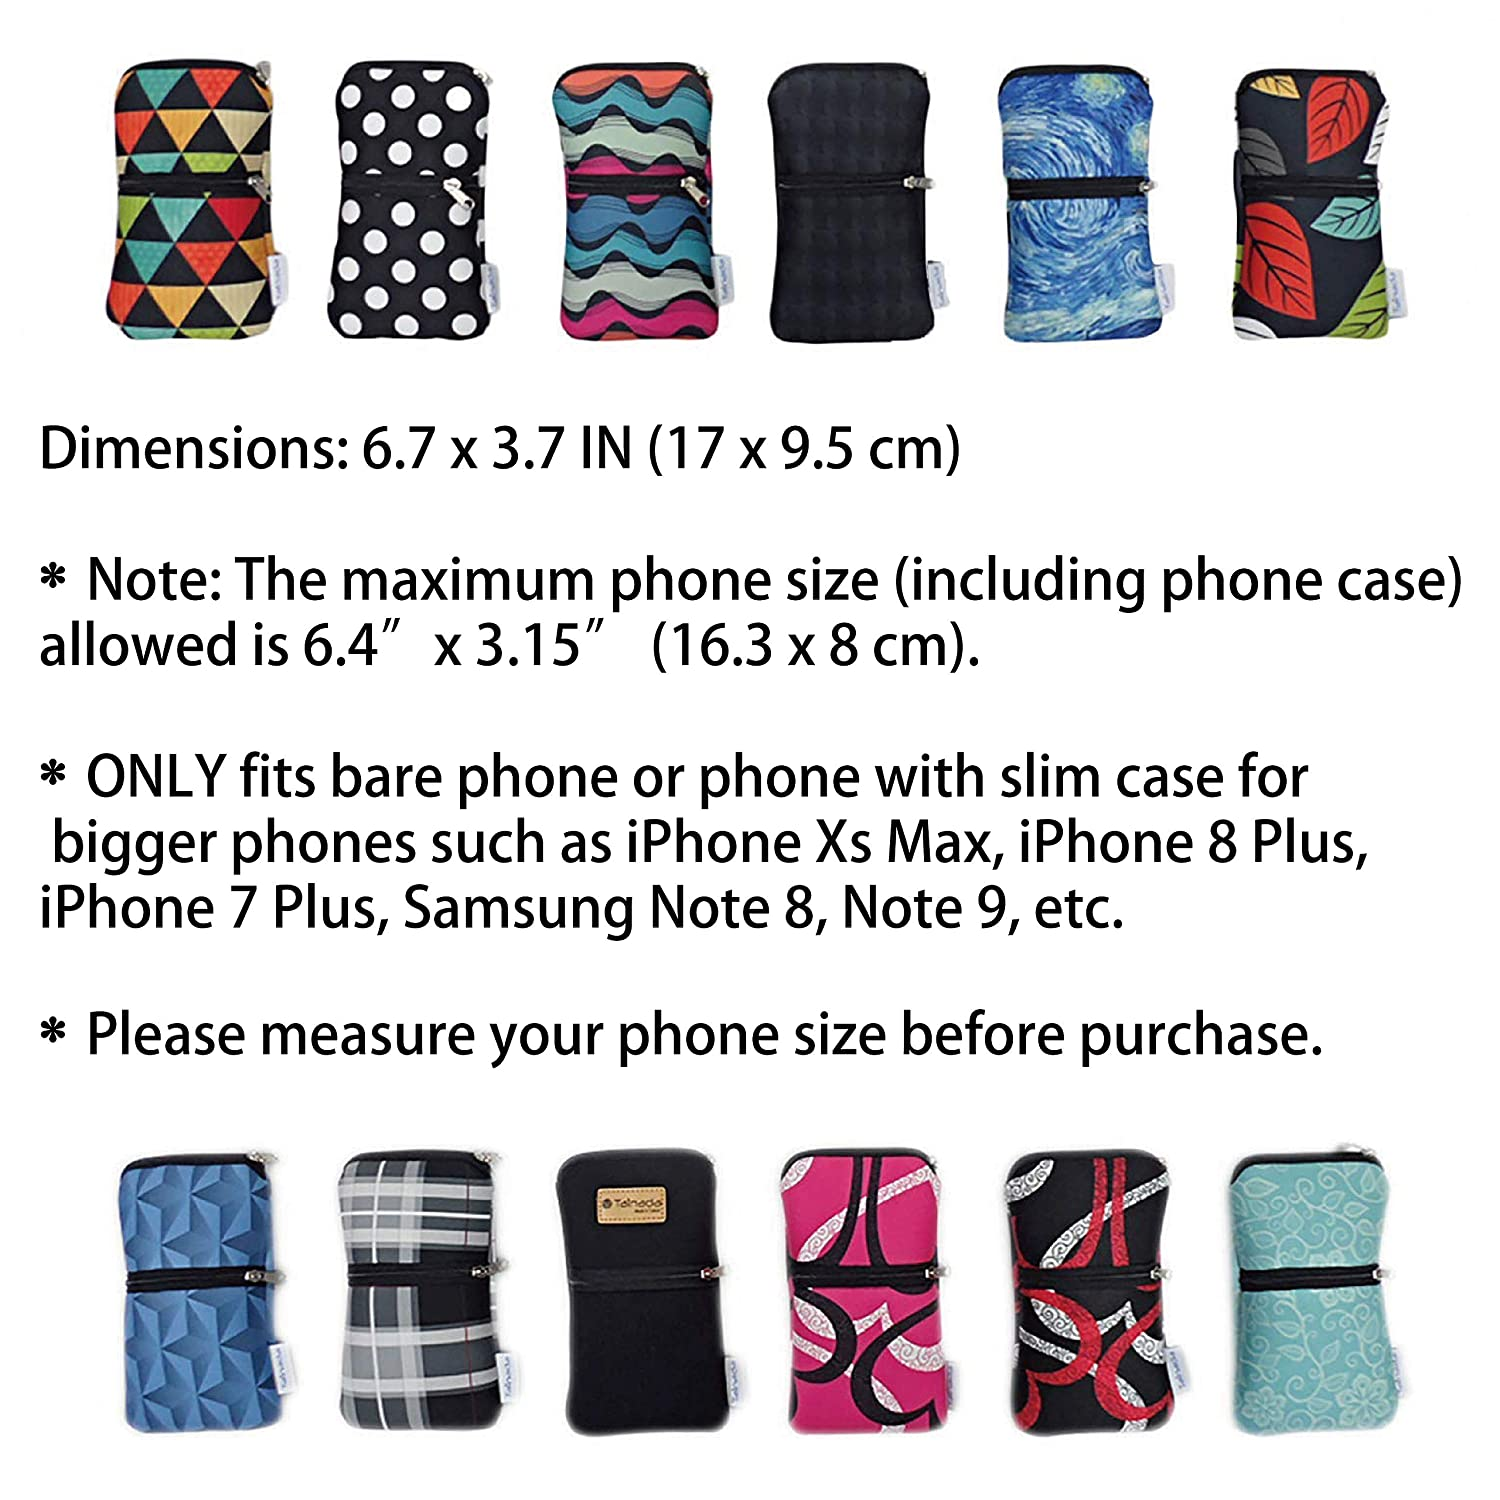 f876c44363a9b5 Amazon.com: Tainada Mobile Phone Neoprene Shockproof Two Zippered Sleeve Case  Bag Pouch with Carabiner, Neck Lanyard Strap, Belt Loop Holster for iPhone  Xs, ...